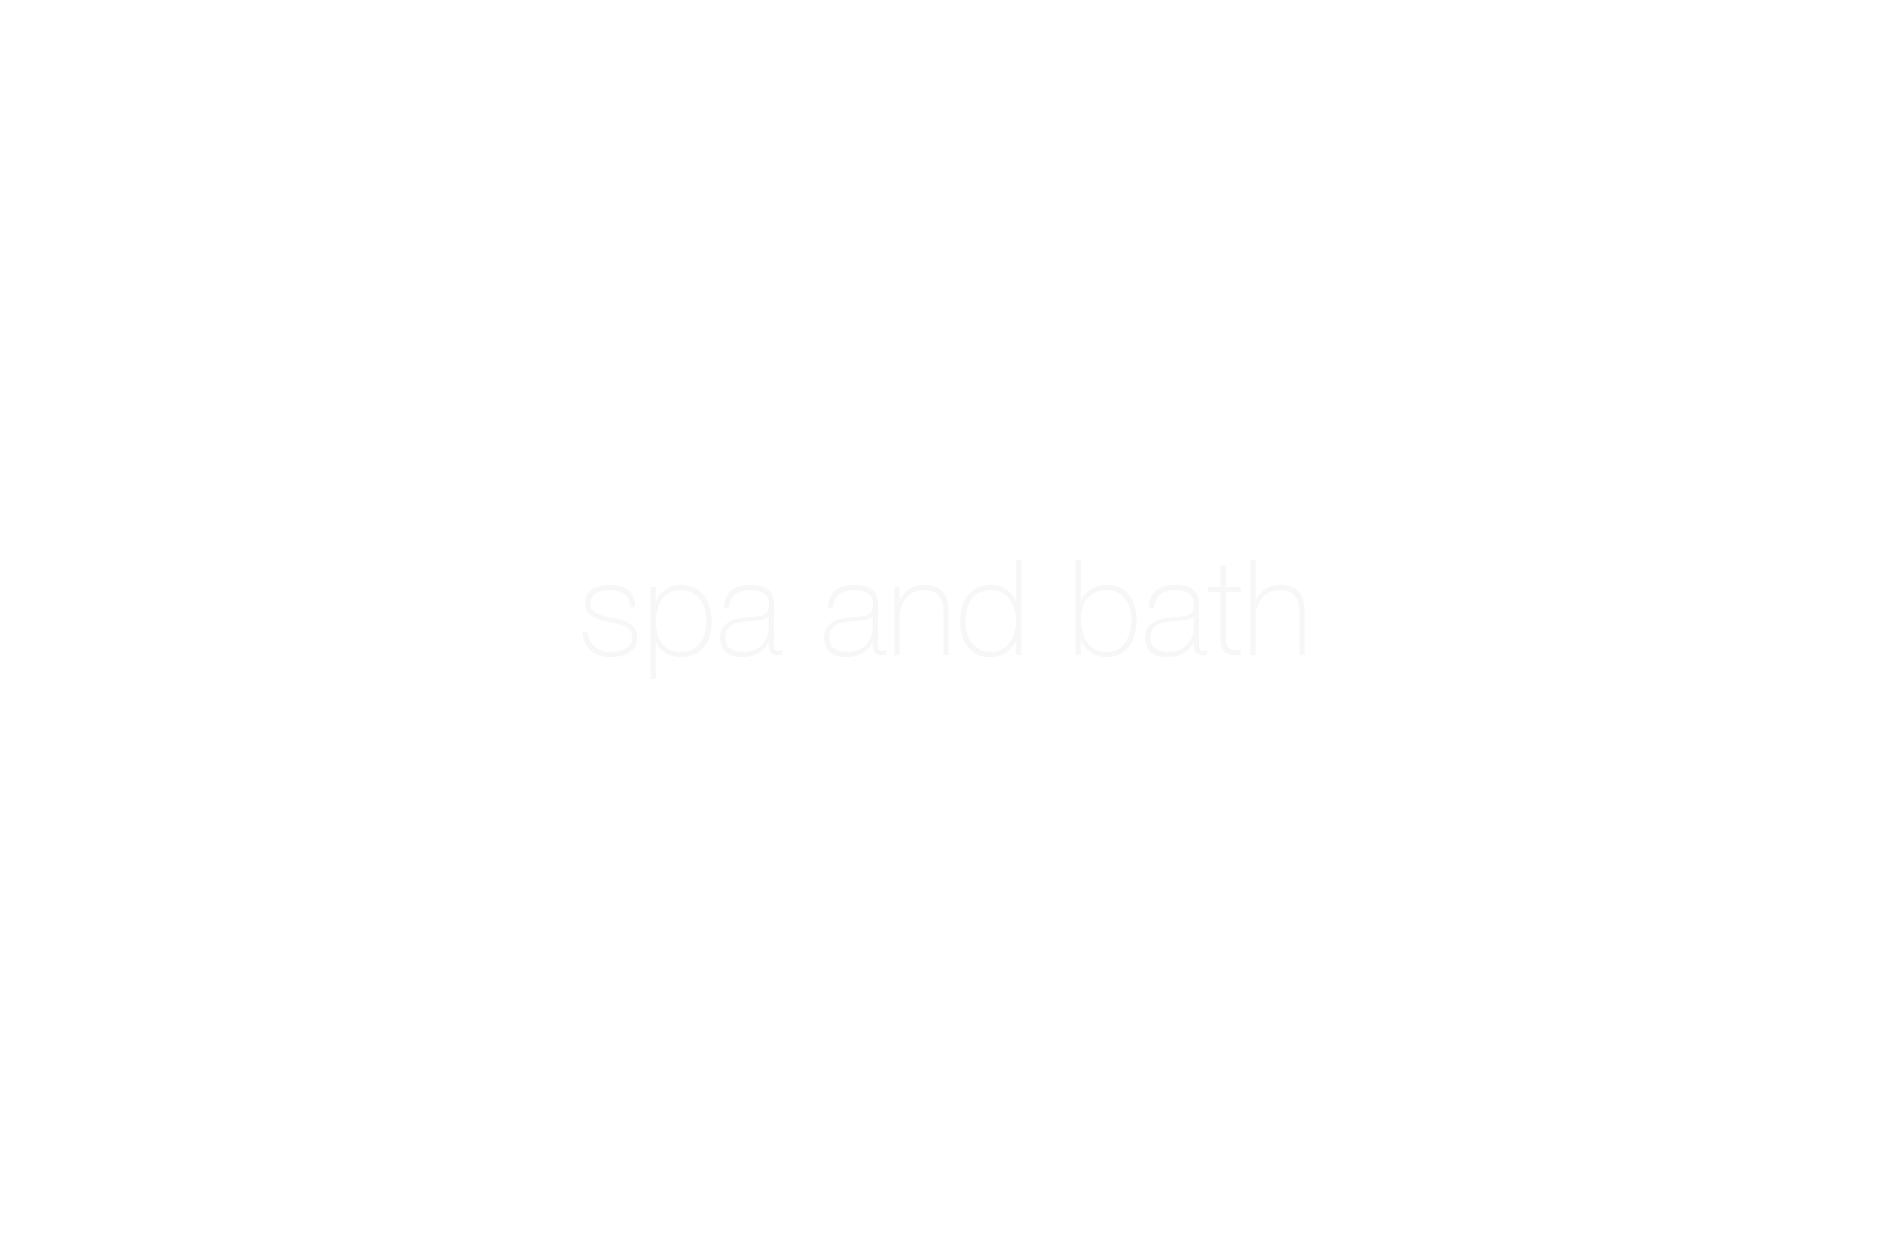 jason-b-graham-spa-and-bath-featured-image-2017.09.15